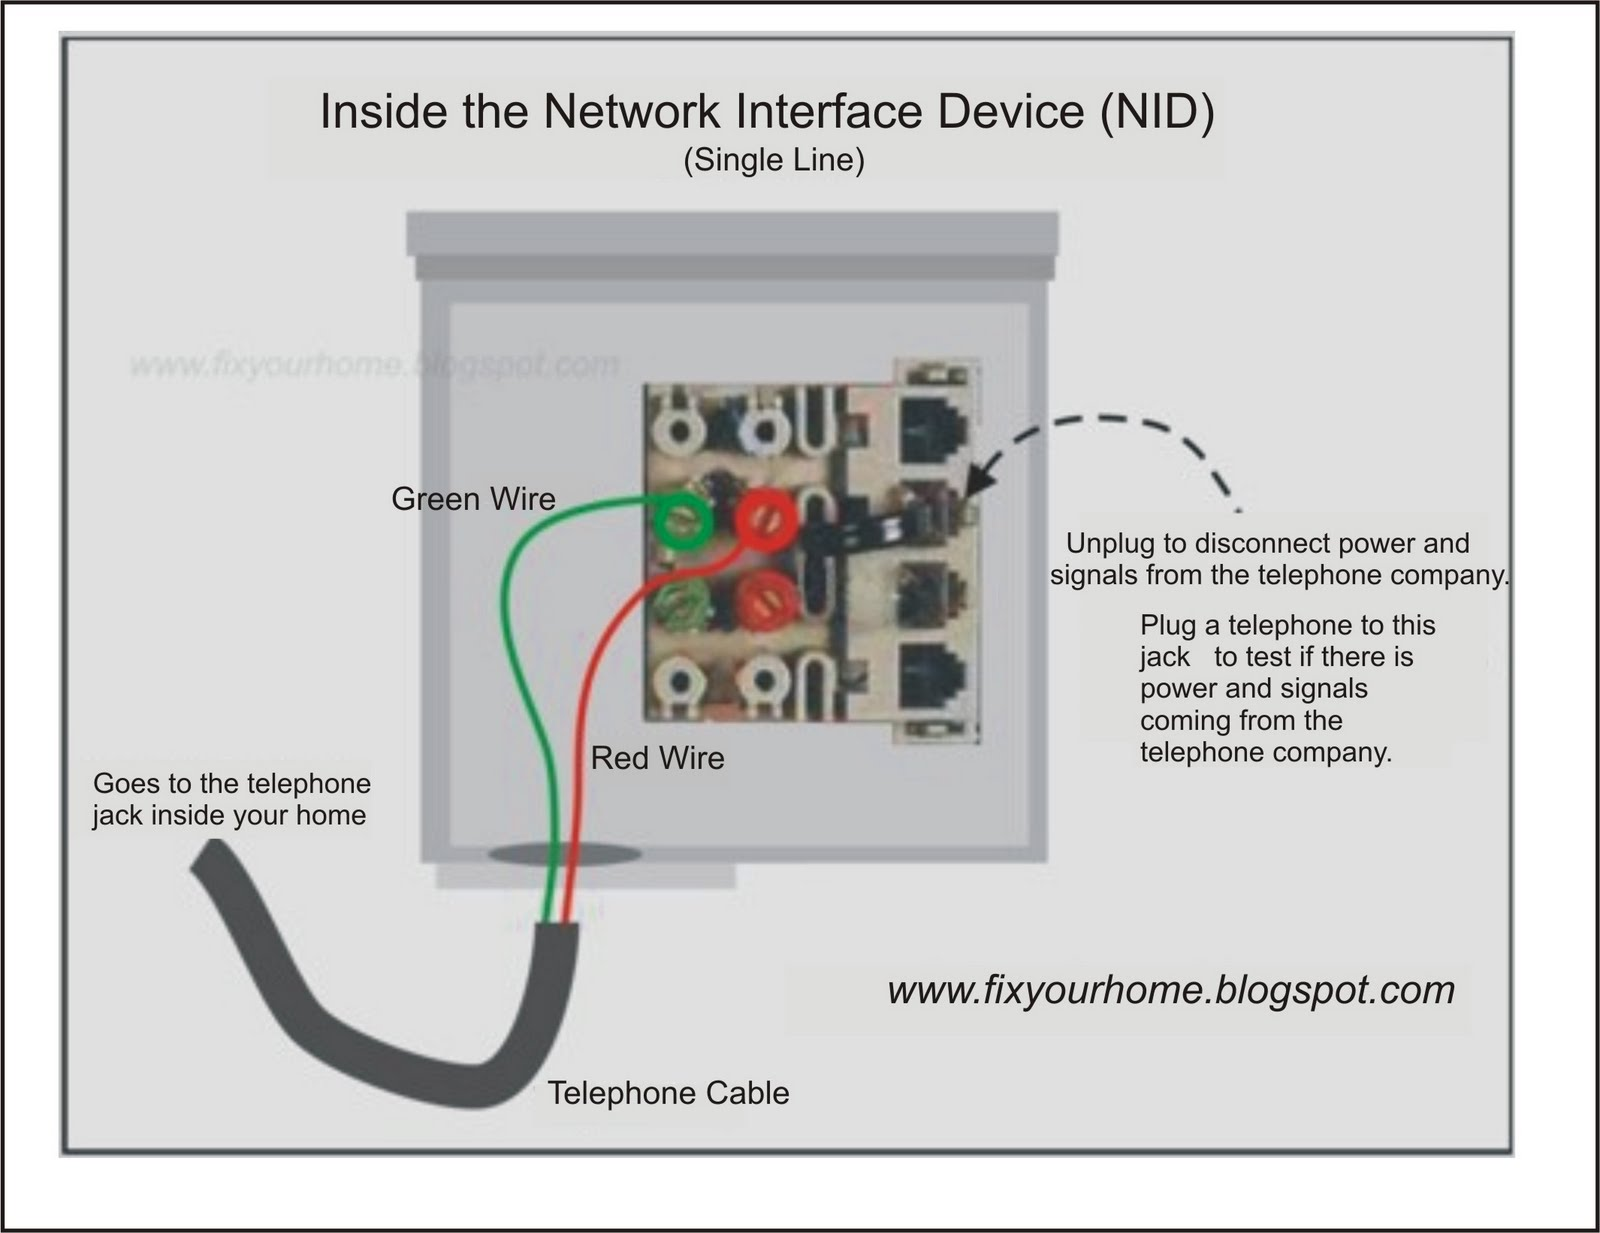 fix your home telephone network interface device nid the telephone network interface device typically refers to the junction box mounted by your telephone service provider on a wall just outside your home